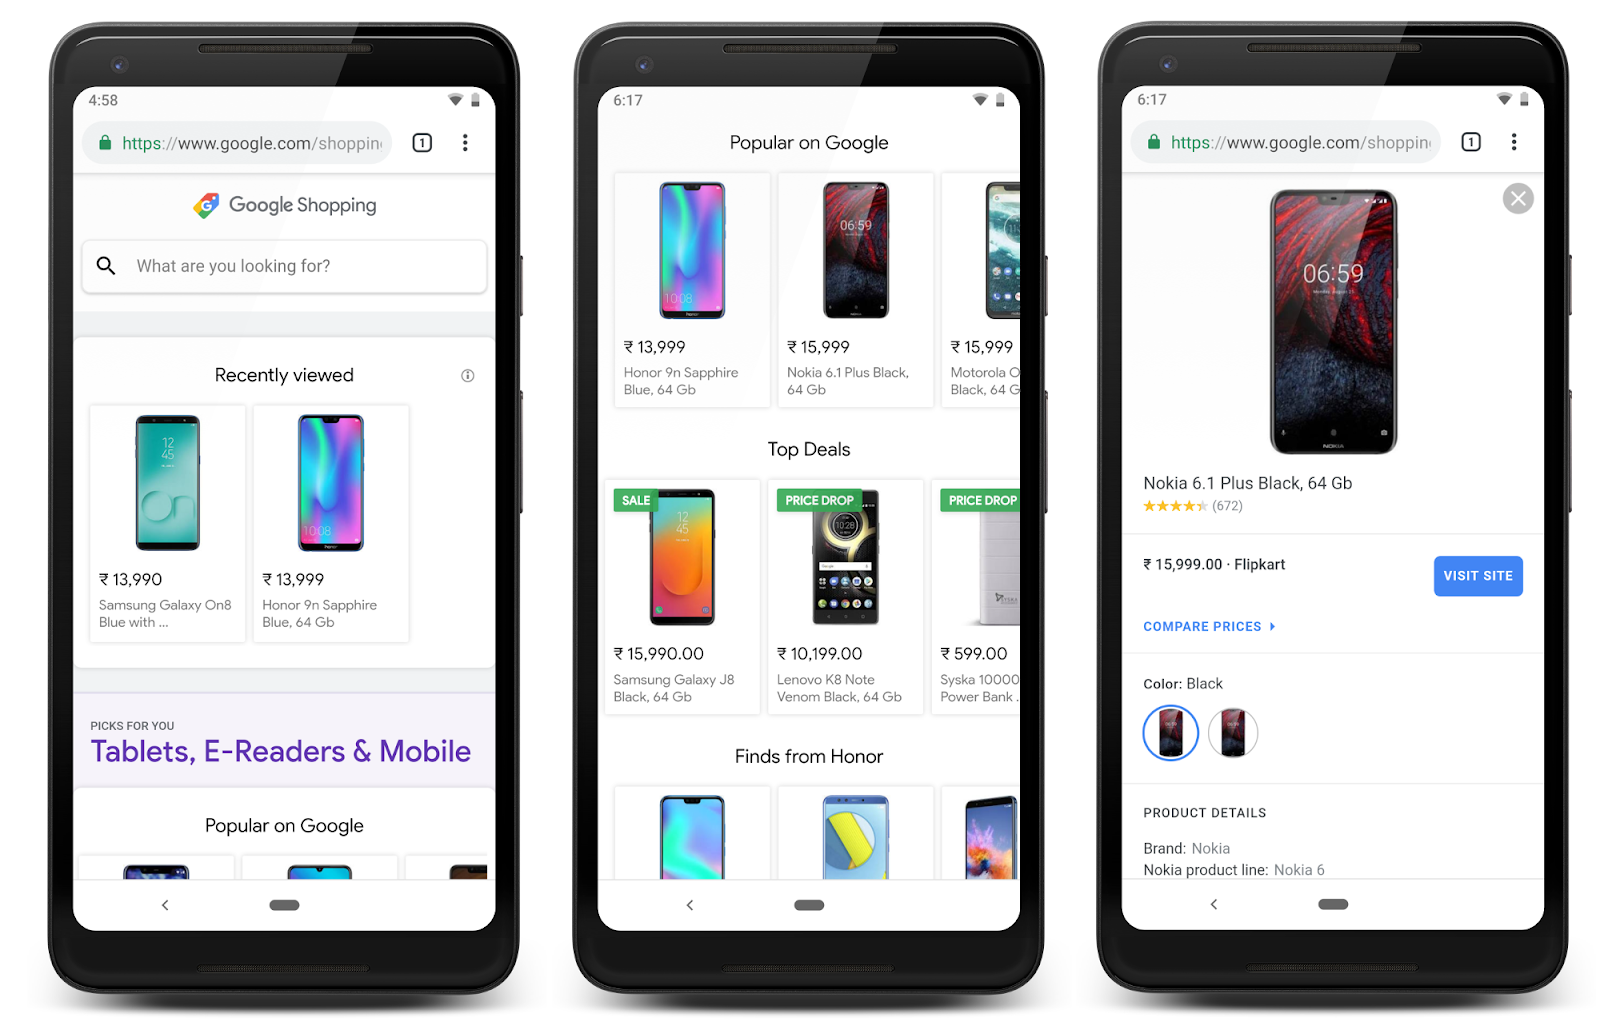 Techmeme: Google launches new Shopping search features in India with